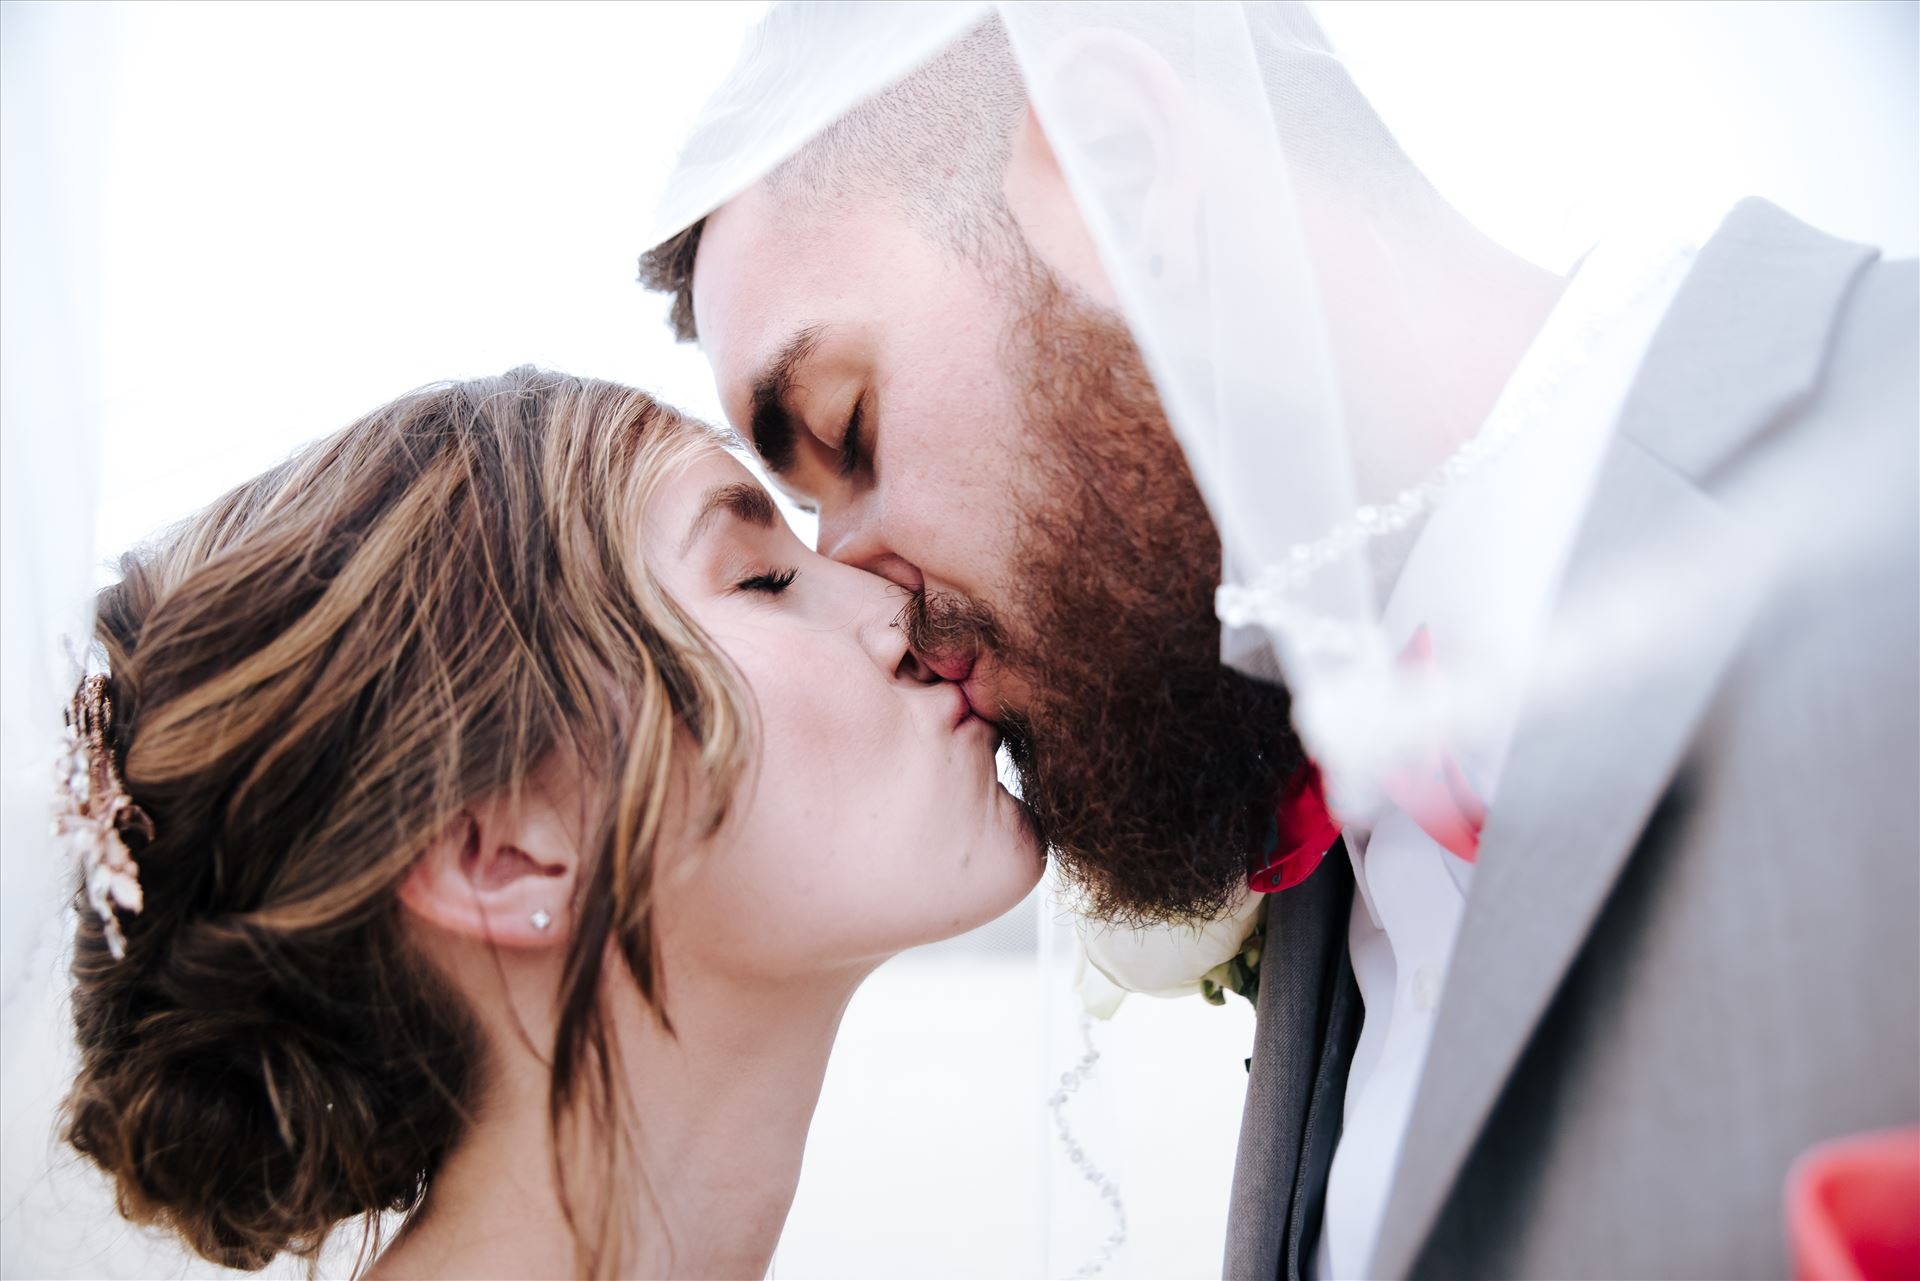 FW-9090.jpg Romantic wedding in the sand on Grover Beach in California.  Barefoot with surfboards and driftwood, tent and ceremony set up by Beach Butlerz, wedding photography by Mirror's Edge Photography.  Romantic Bride and Groom under the veil by Sarah Williams